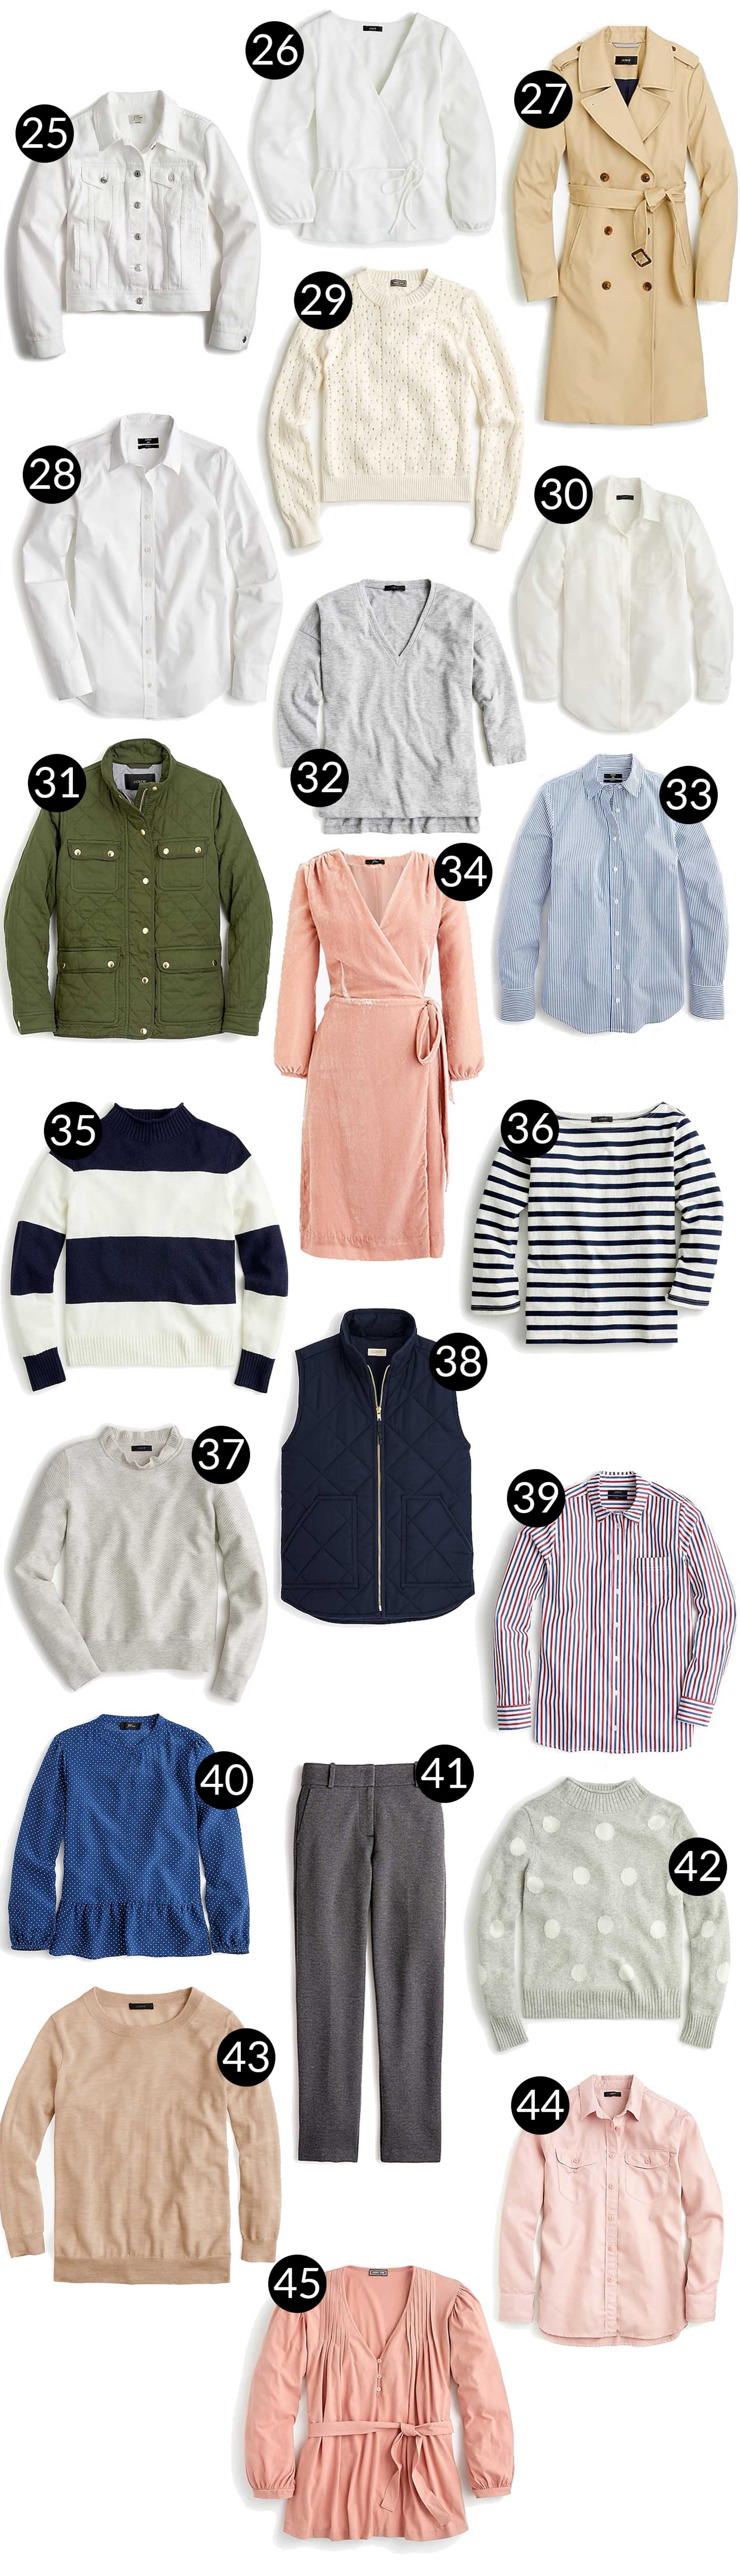 J.Crew Labor Day Weekend Sales - Kelly in the City